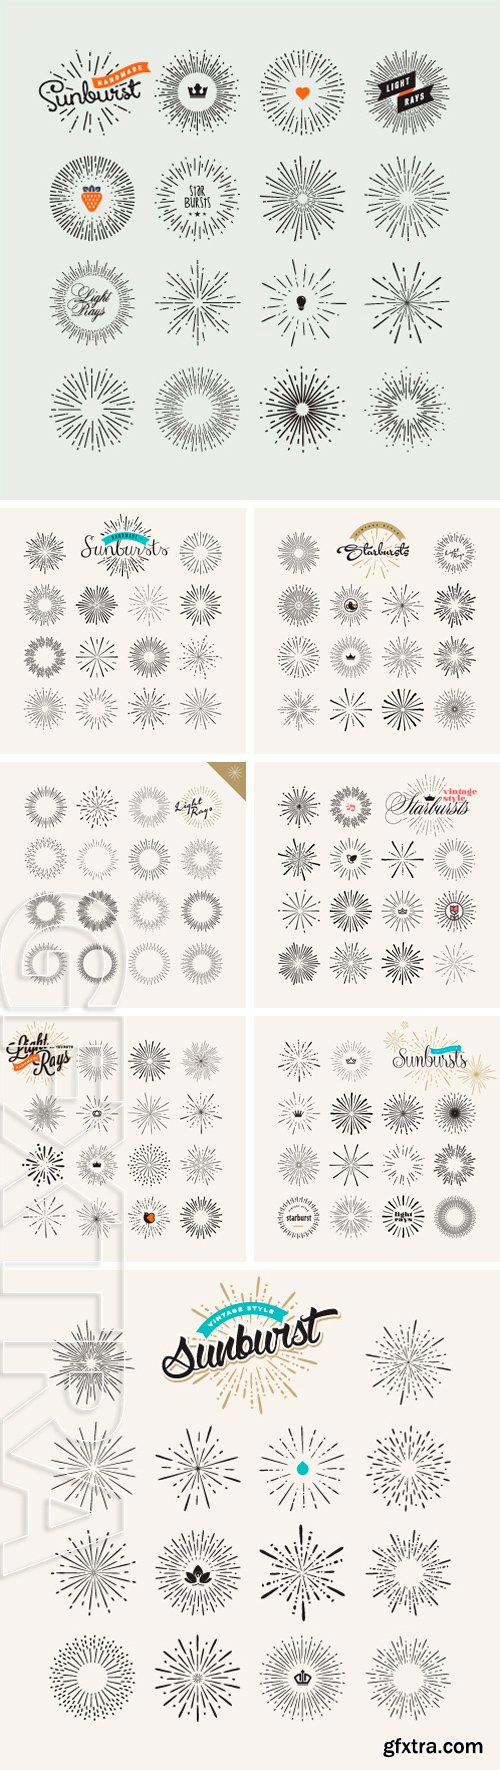 Stock Vectors - Set of vintage style elements for graphic and web design. Light rays handmade vector elements